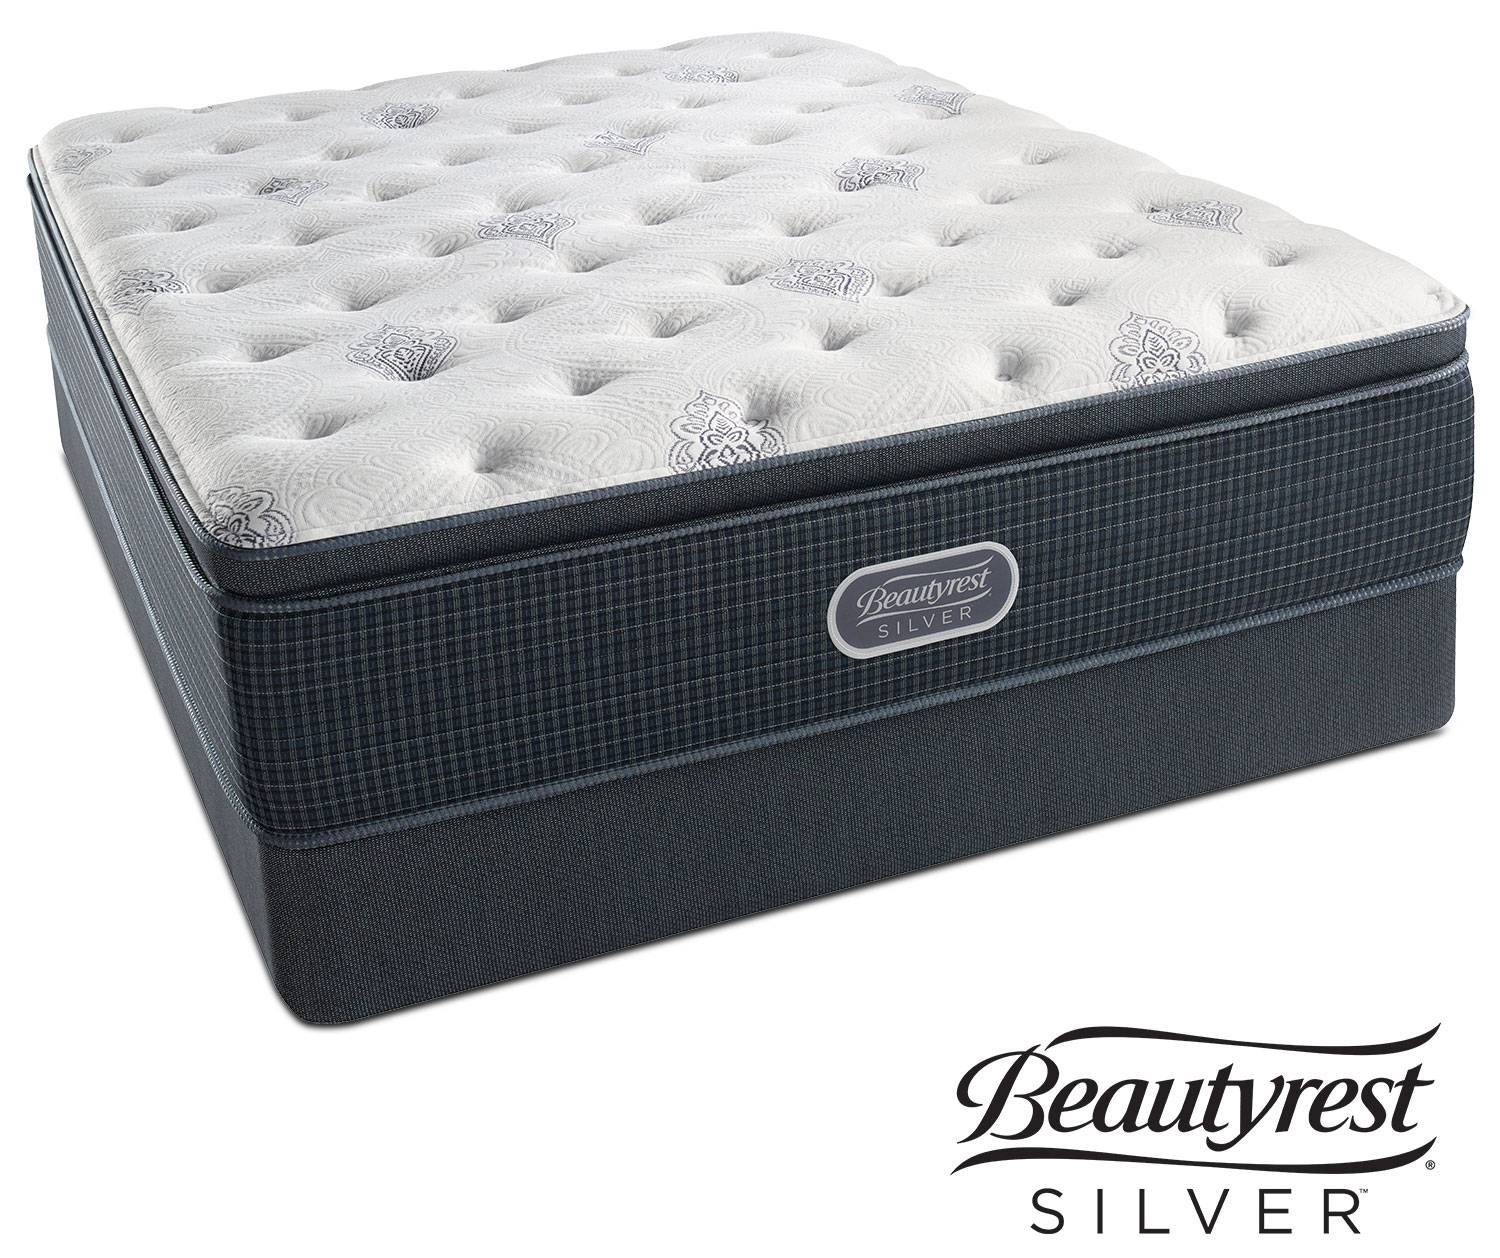 White River Plush Pillowtop Queen Mattress And Foundation Set with regard to Queen Mattress Sets (Image 15 of 15)